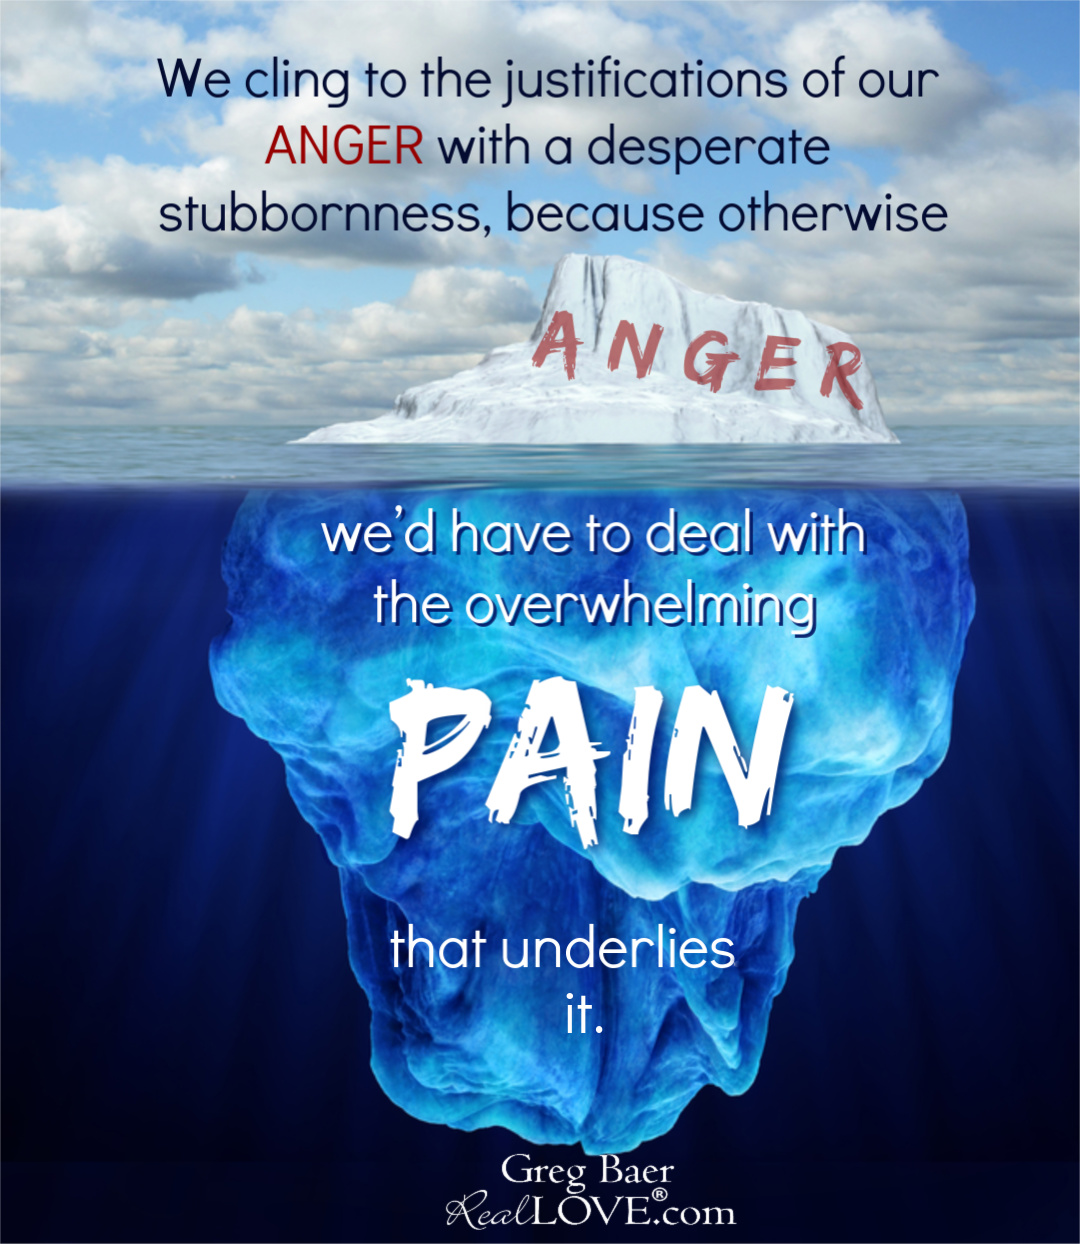 Concept art showing iceberg demonstrating pain is greater than anger.